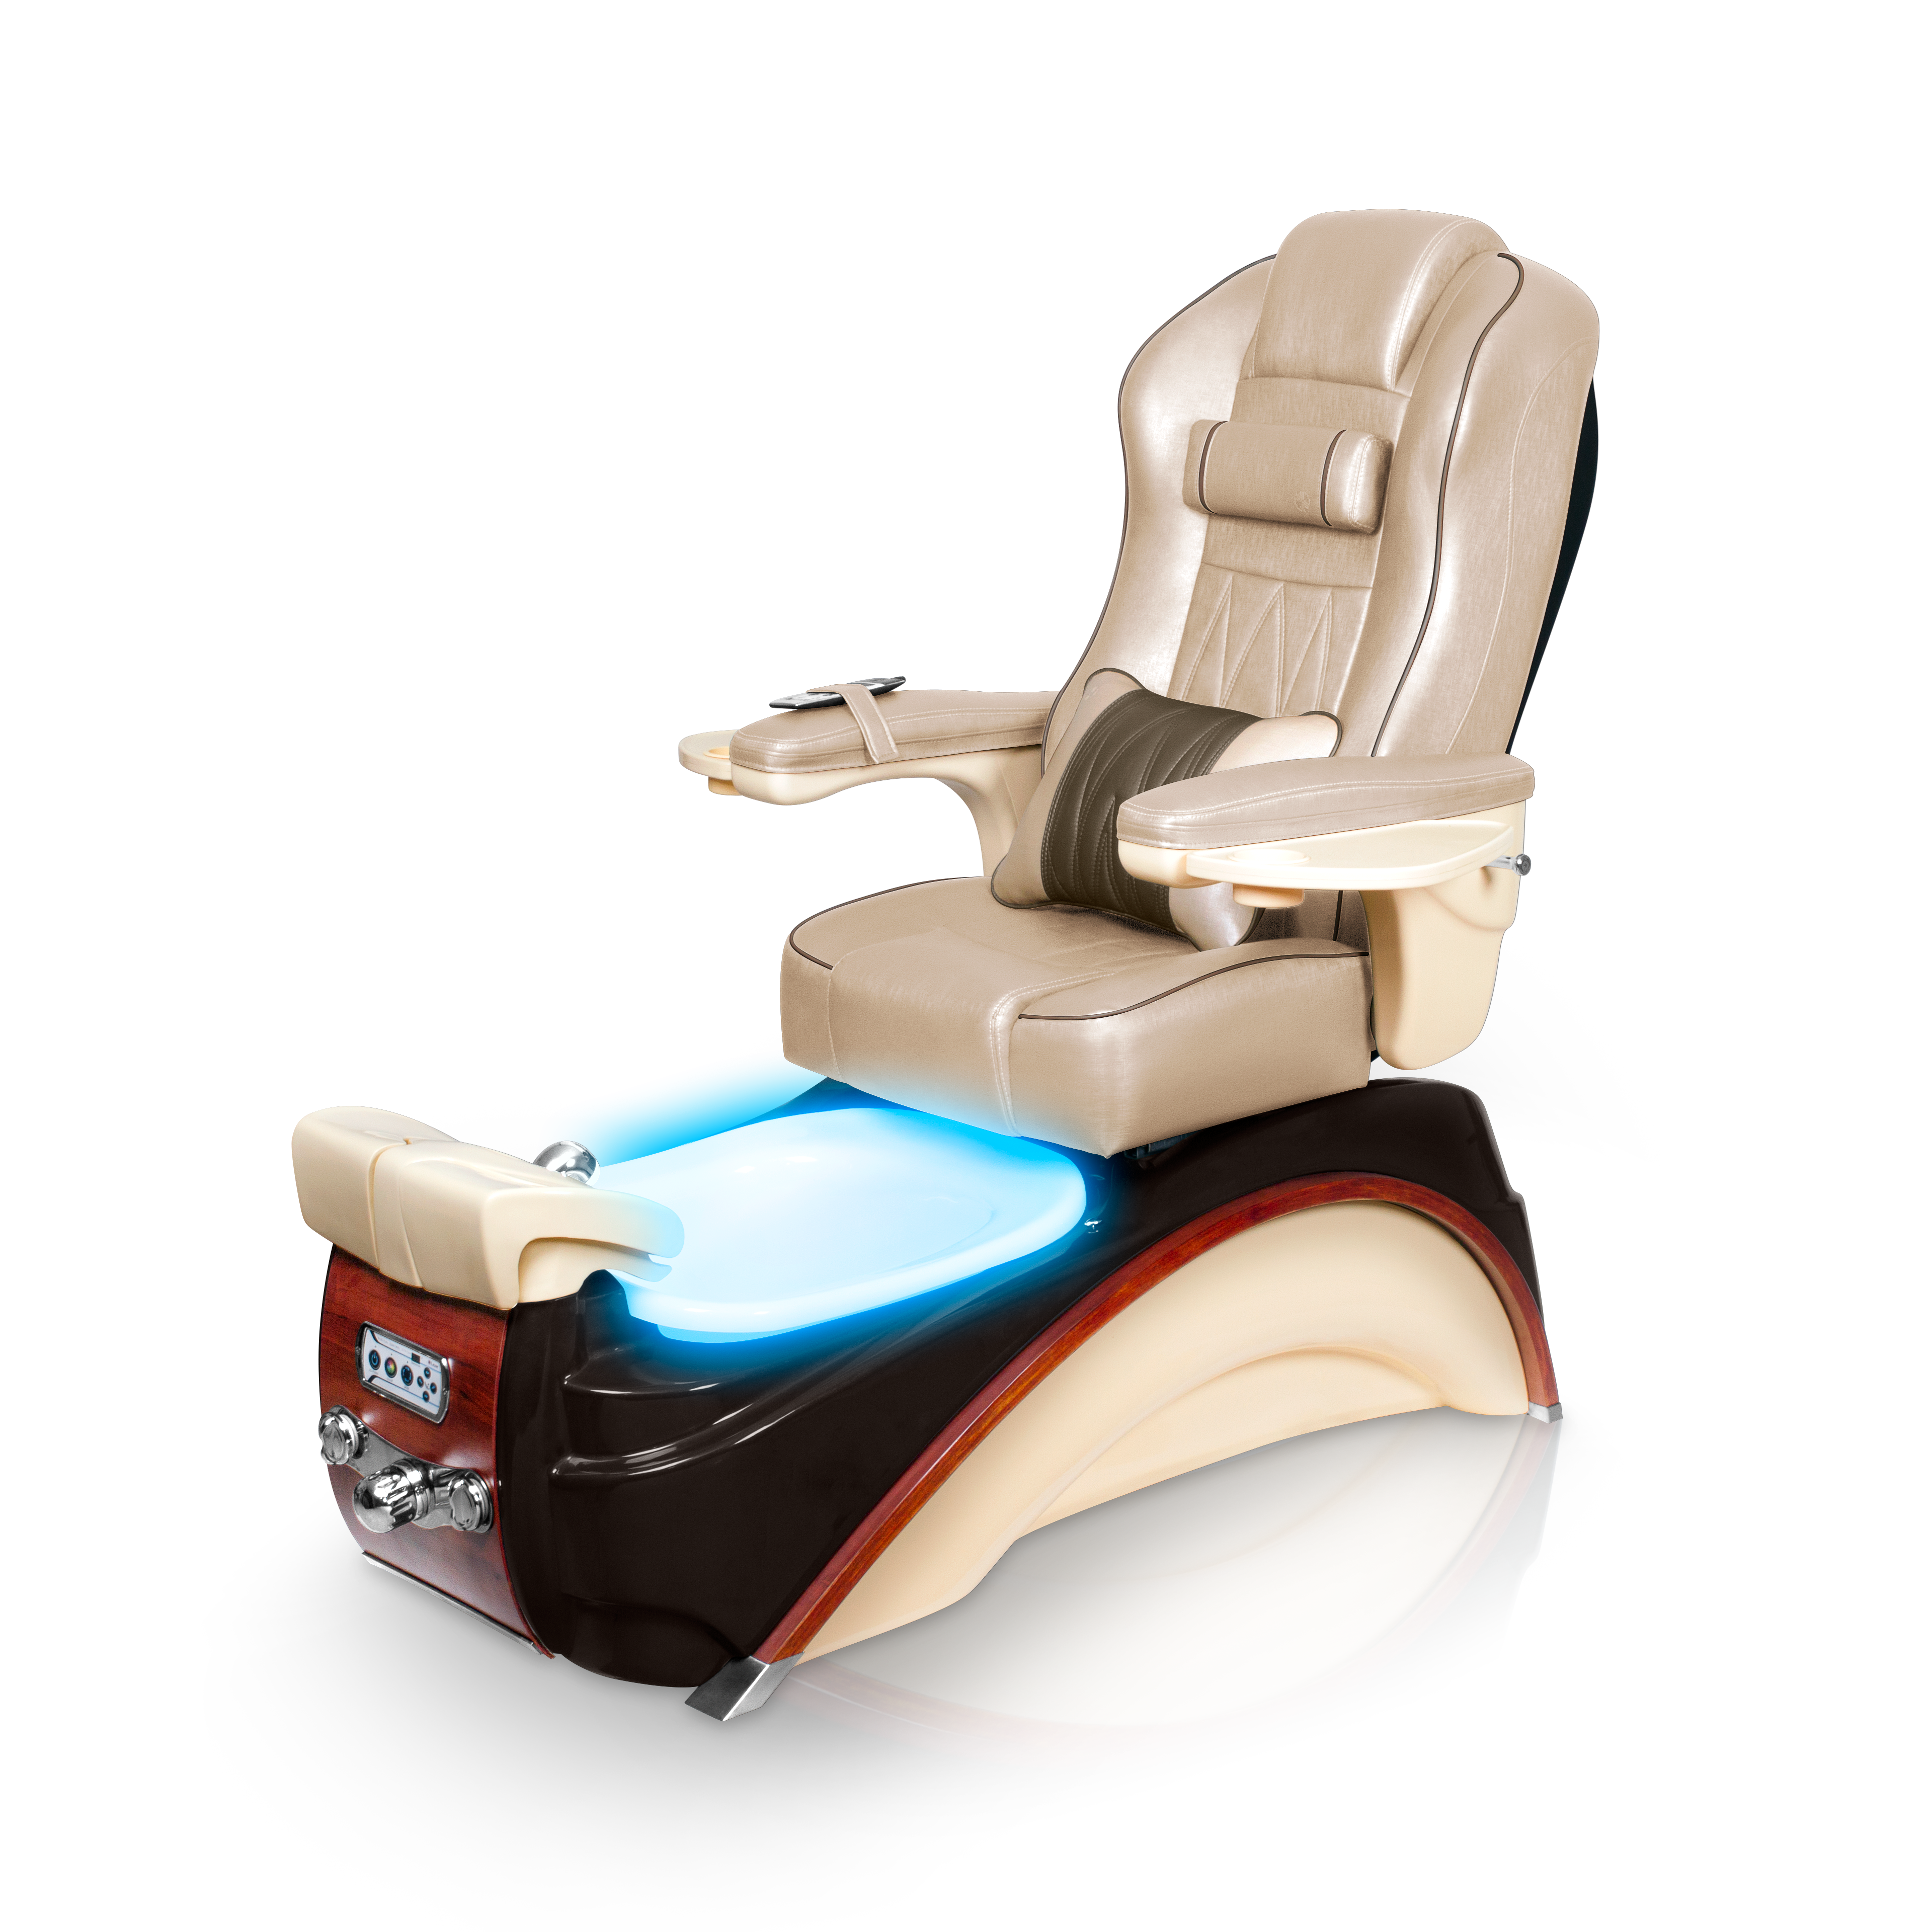 Lexor Elite Pedi Spa Chair copy  sc 1 st  NAILPRO Magazine & Lexor Elite Pedi Spa Chair copy - Nailpro